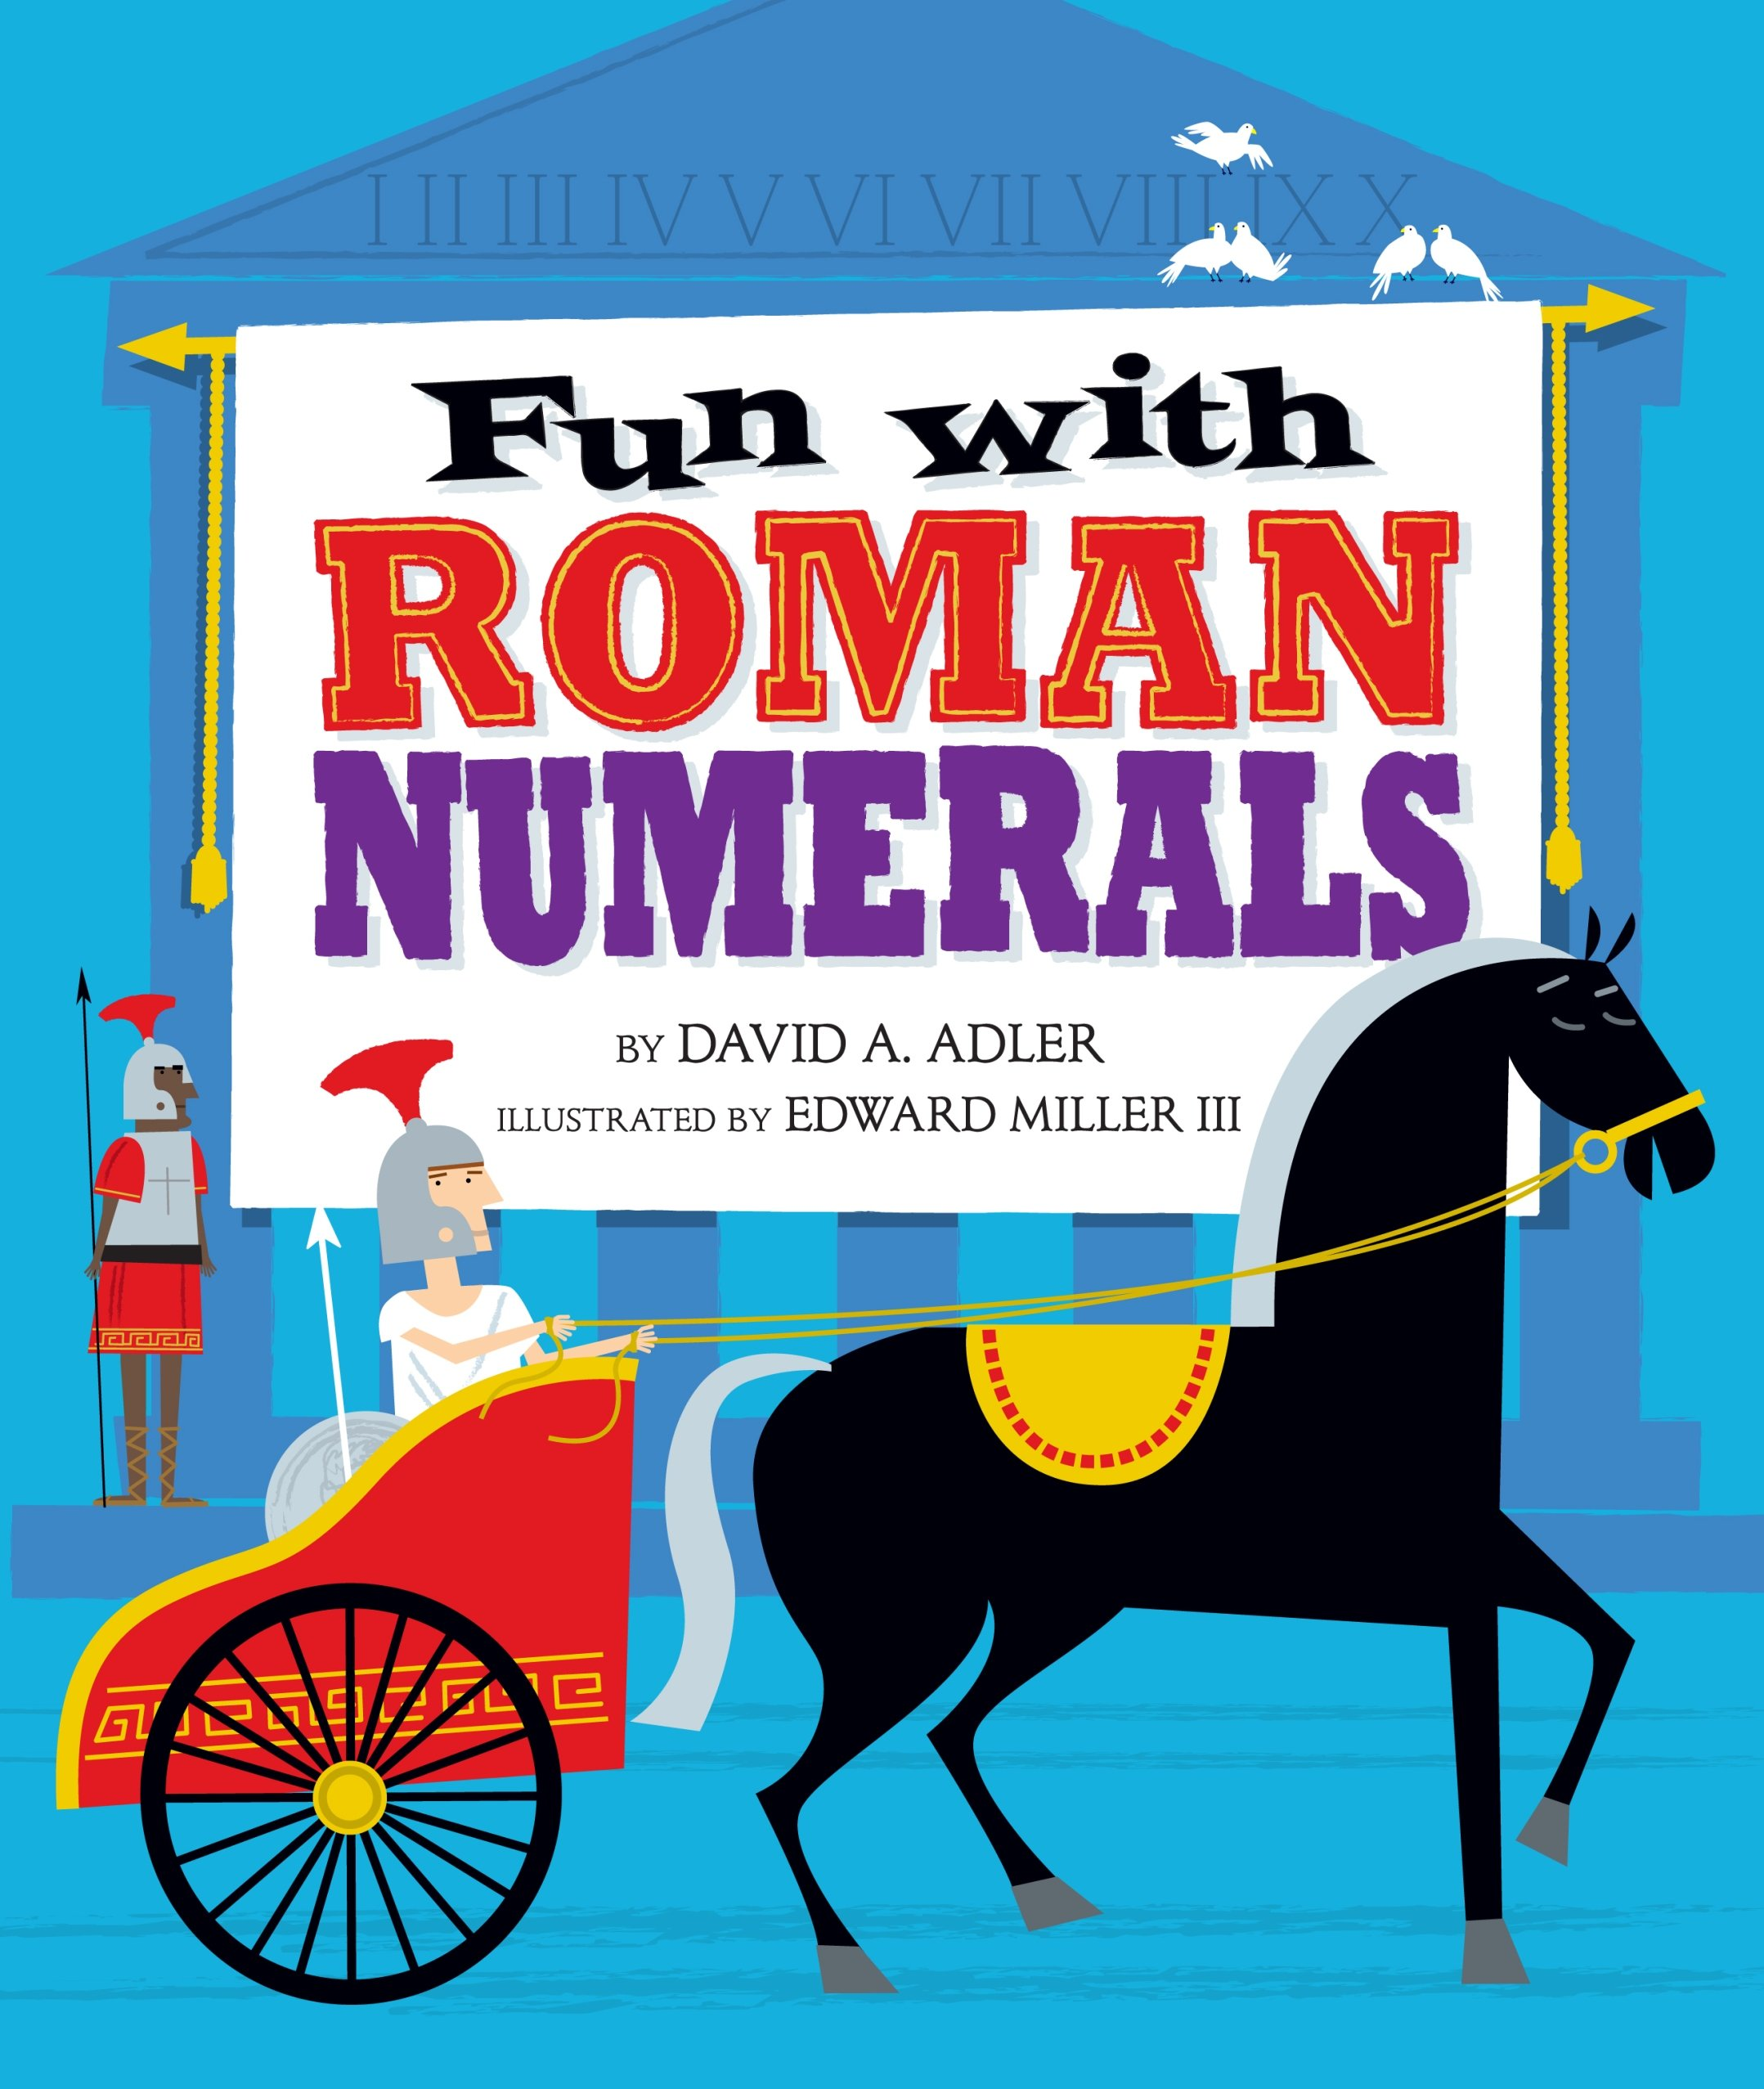 Fun Roman Numerals David Adler product image